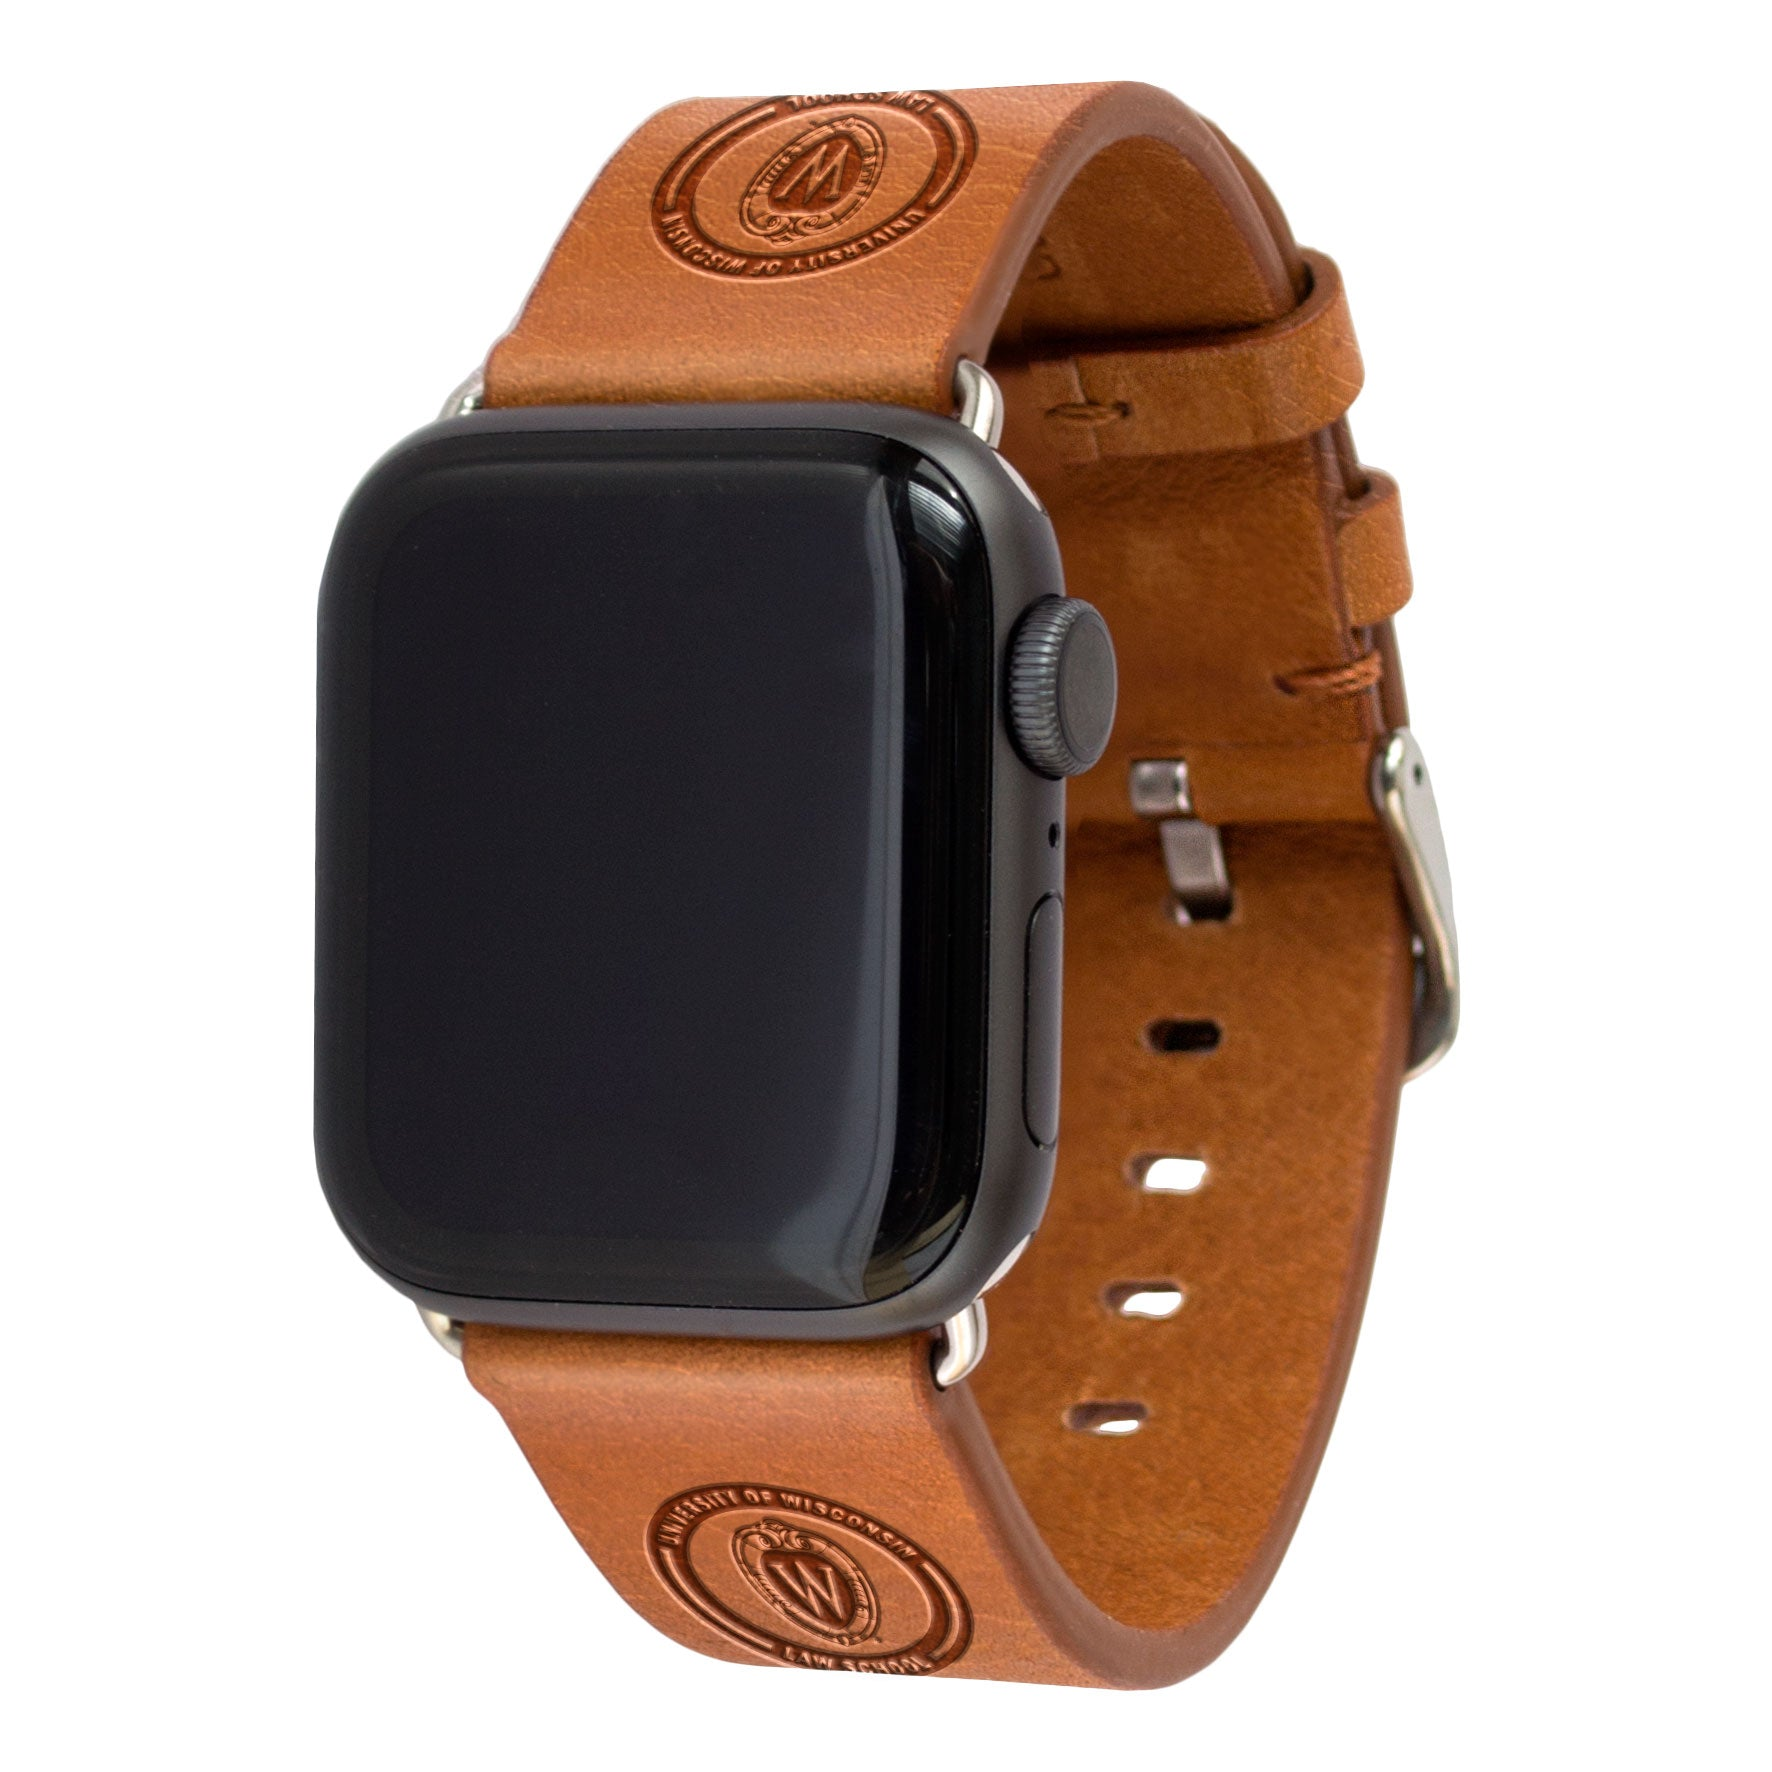 University of Wisconsin Law School Leather Apple Watch Band